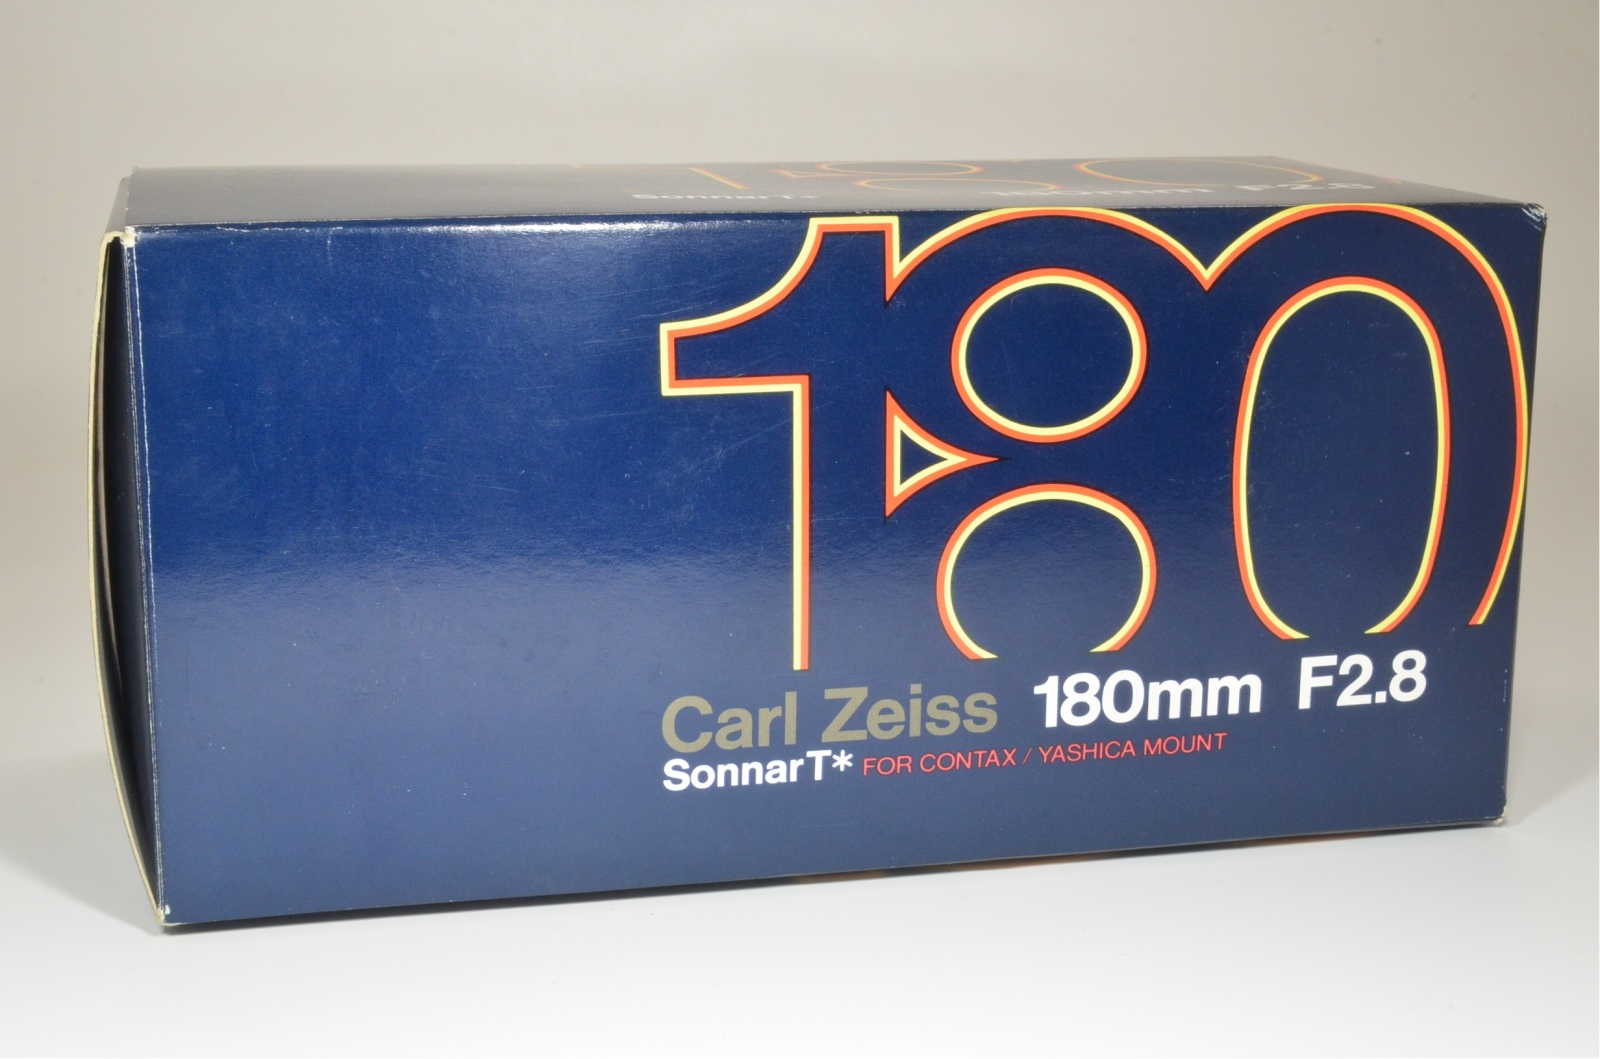 contax carl zeiss sonnar t* 180mm f2.8 mmj made in japan boxed